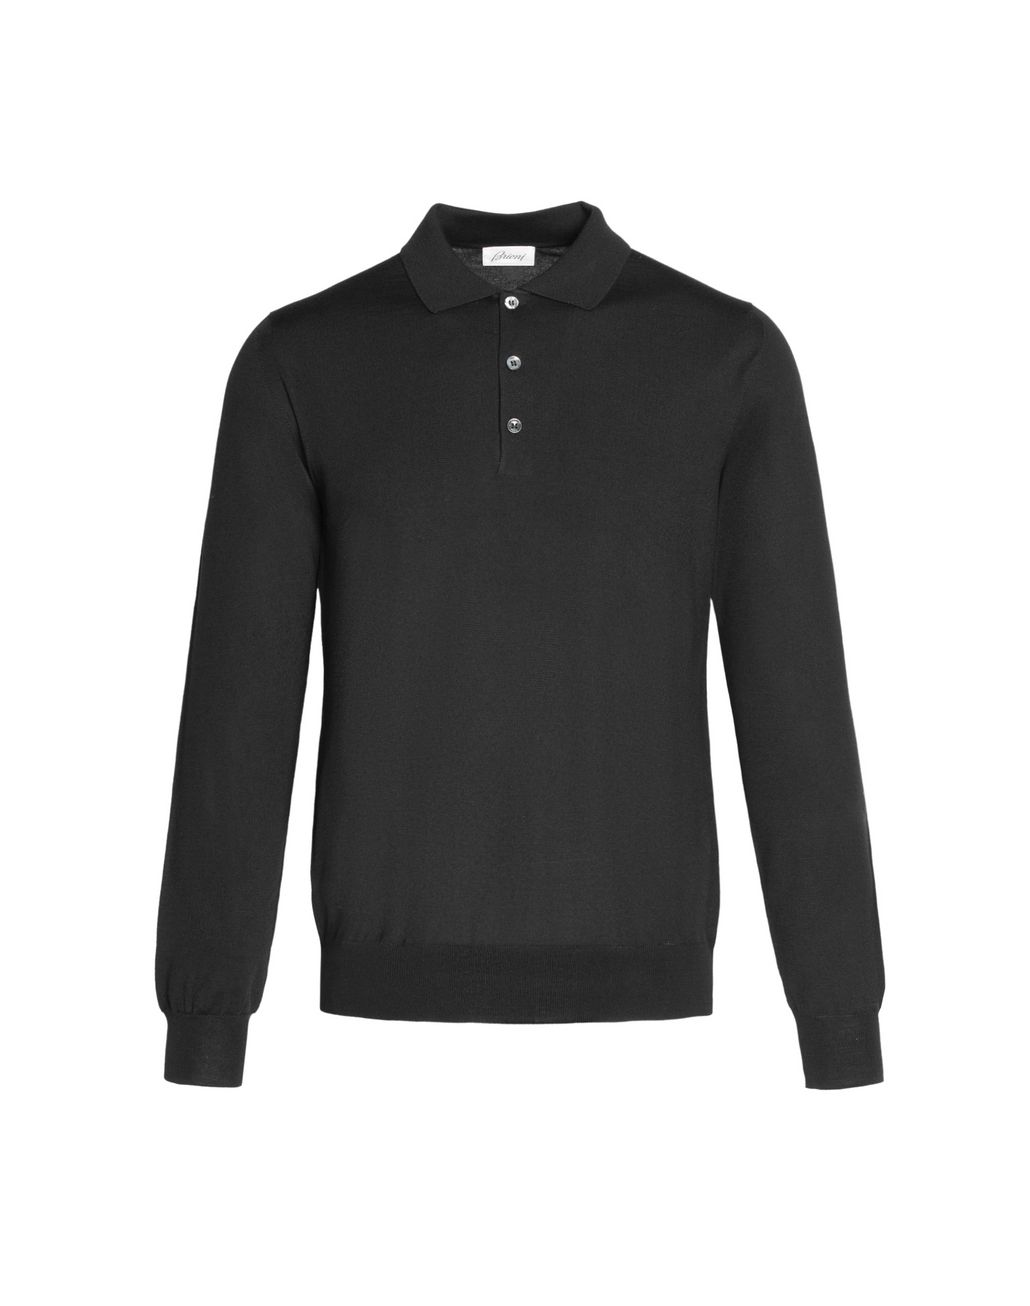 BRIONI  'Essential' Black Long Sleeved Polo Shirt T-Shirts & Polos Man f